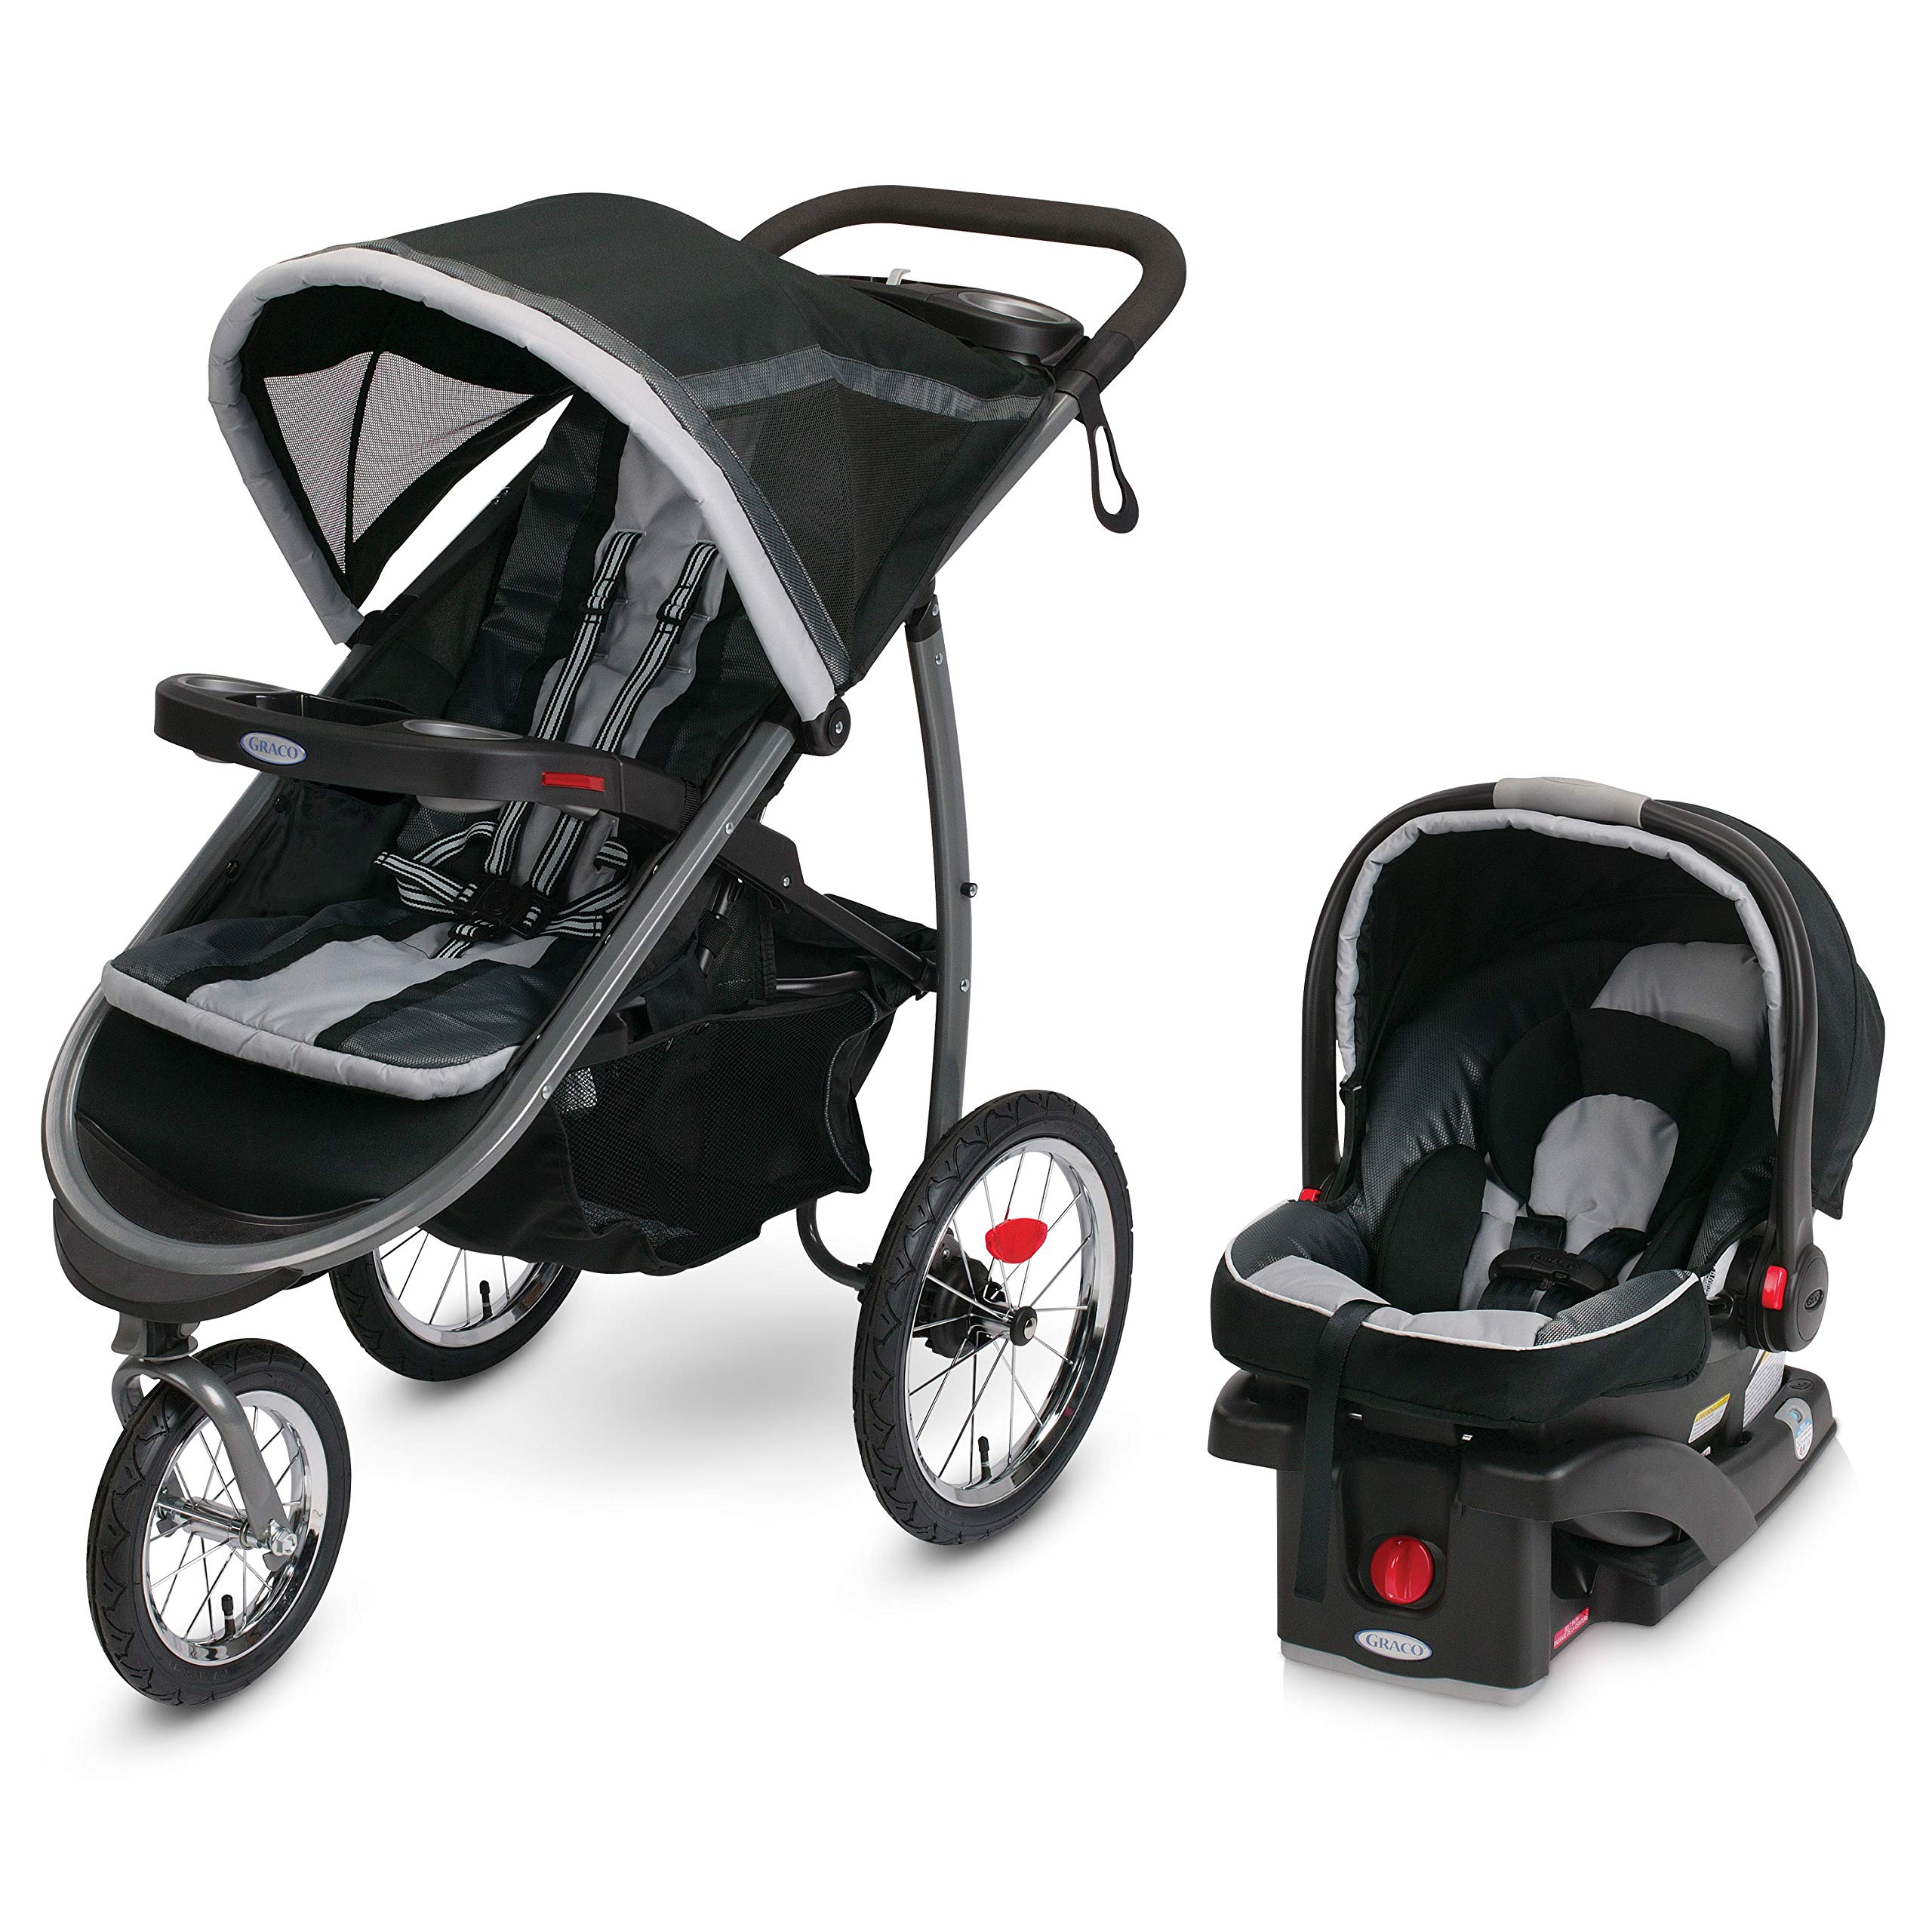 Graco FastAction Fold Jogger Travel System | Includes the FastAction Fold Jogging Stroller and SnugRide 35 Infant Car Seat, Gotham by Graco